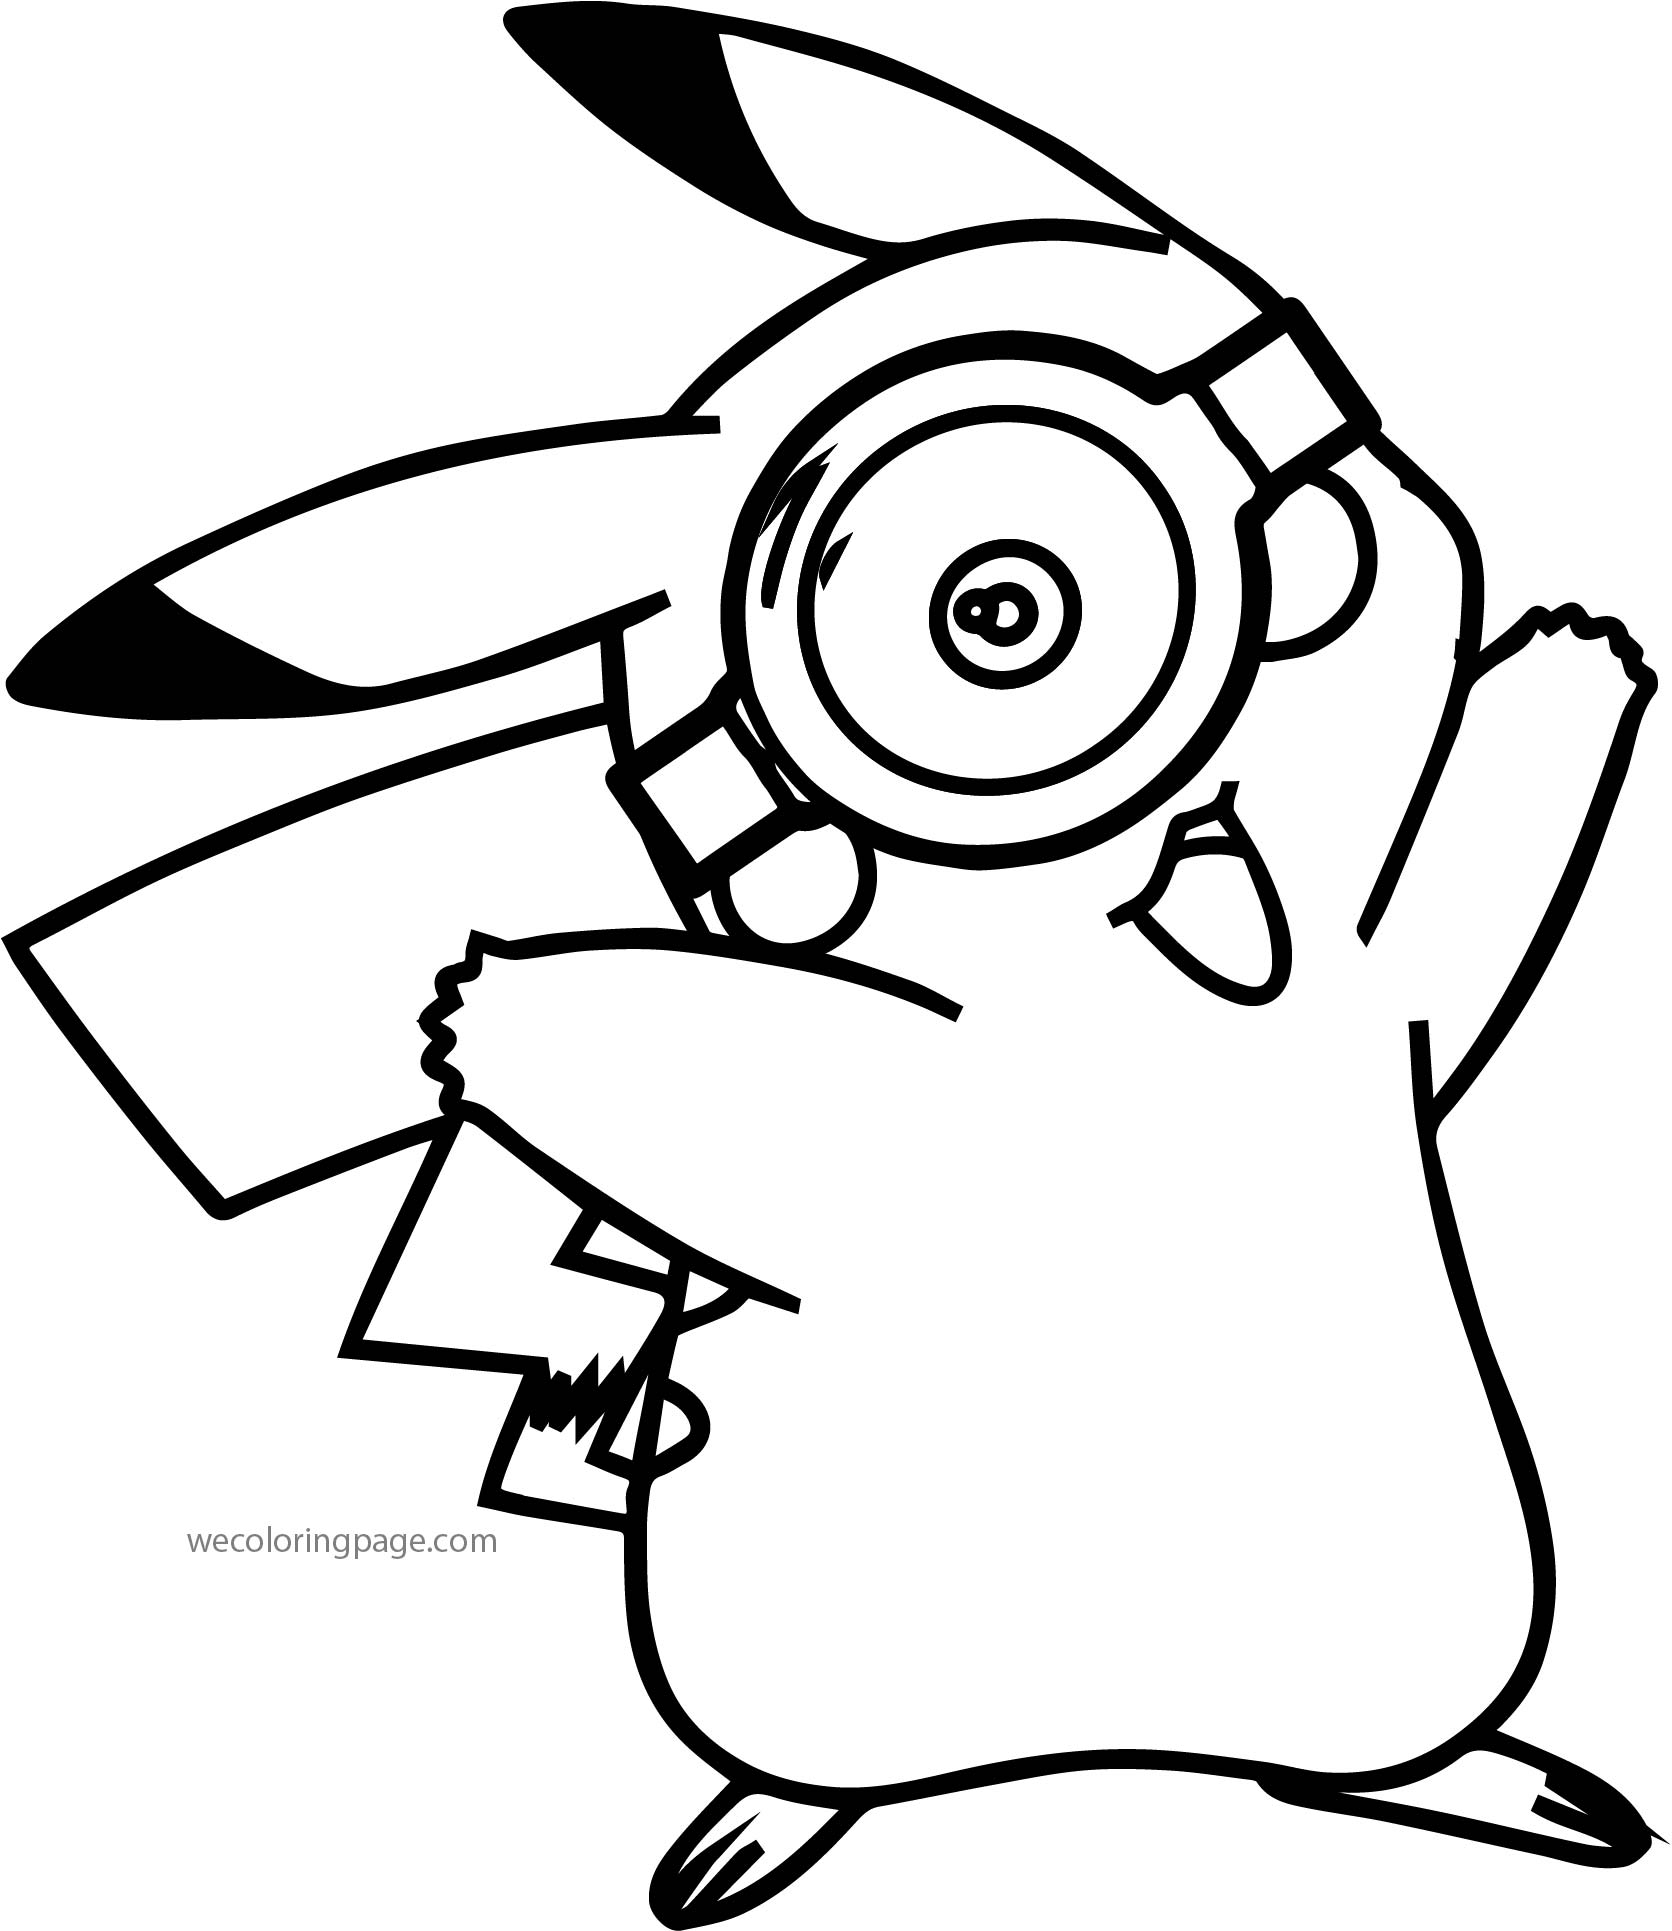 25 Pikachu Coloring Pages Pictures | FREE COLORING PAGES